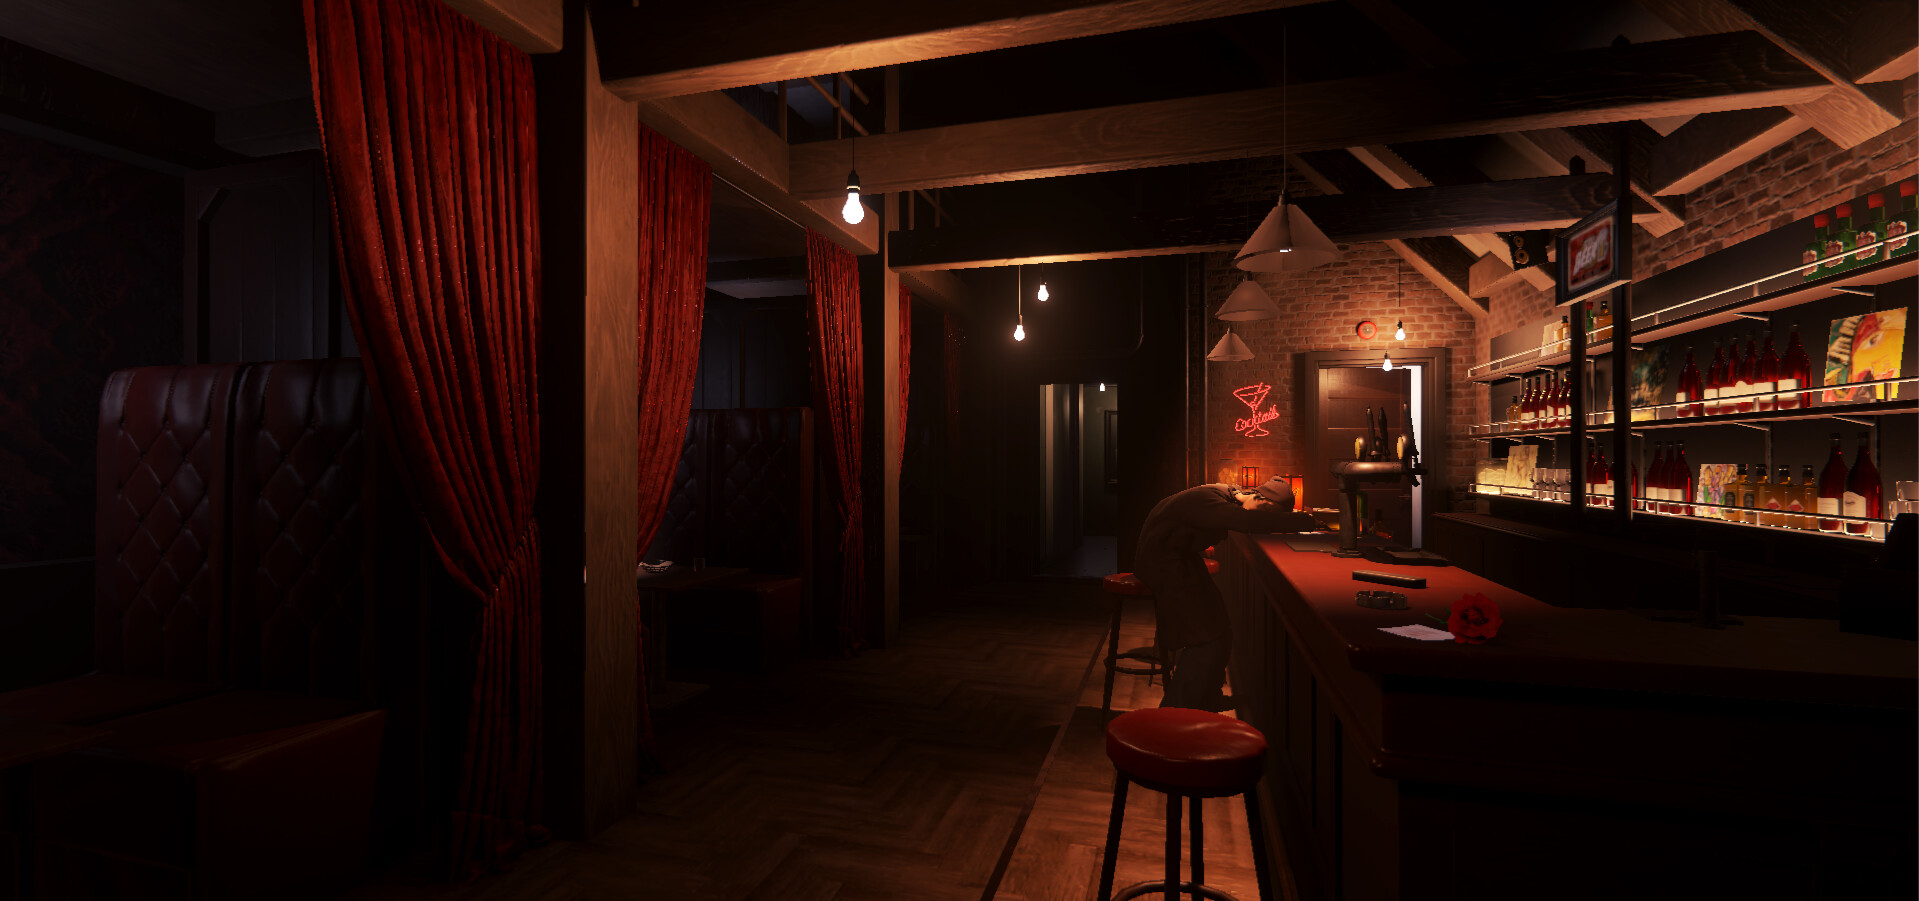 Lighting made in the first loop that has a warm mood.